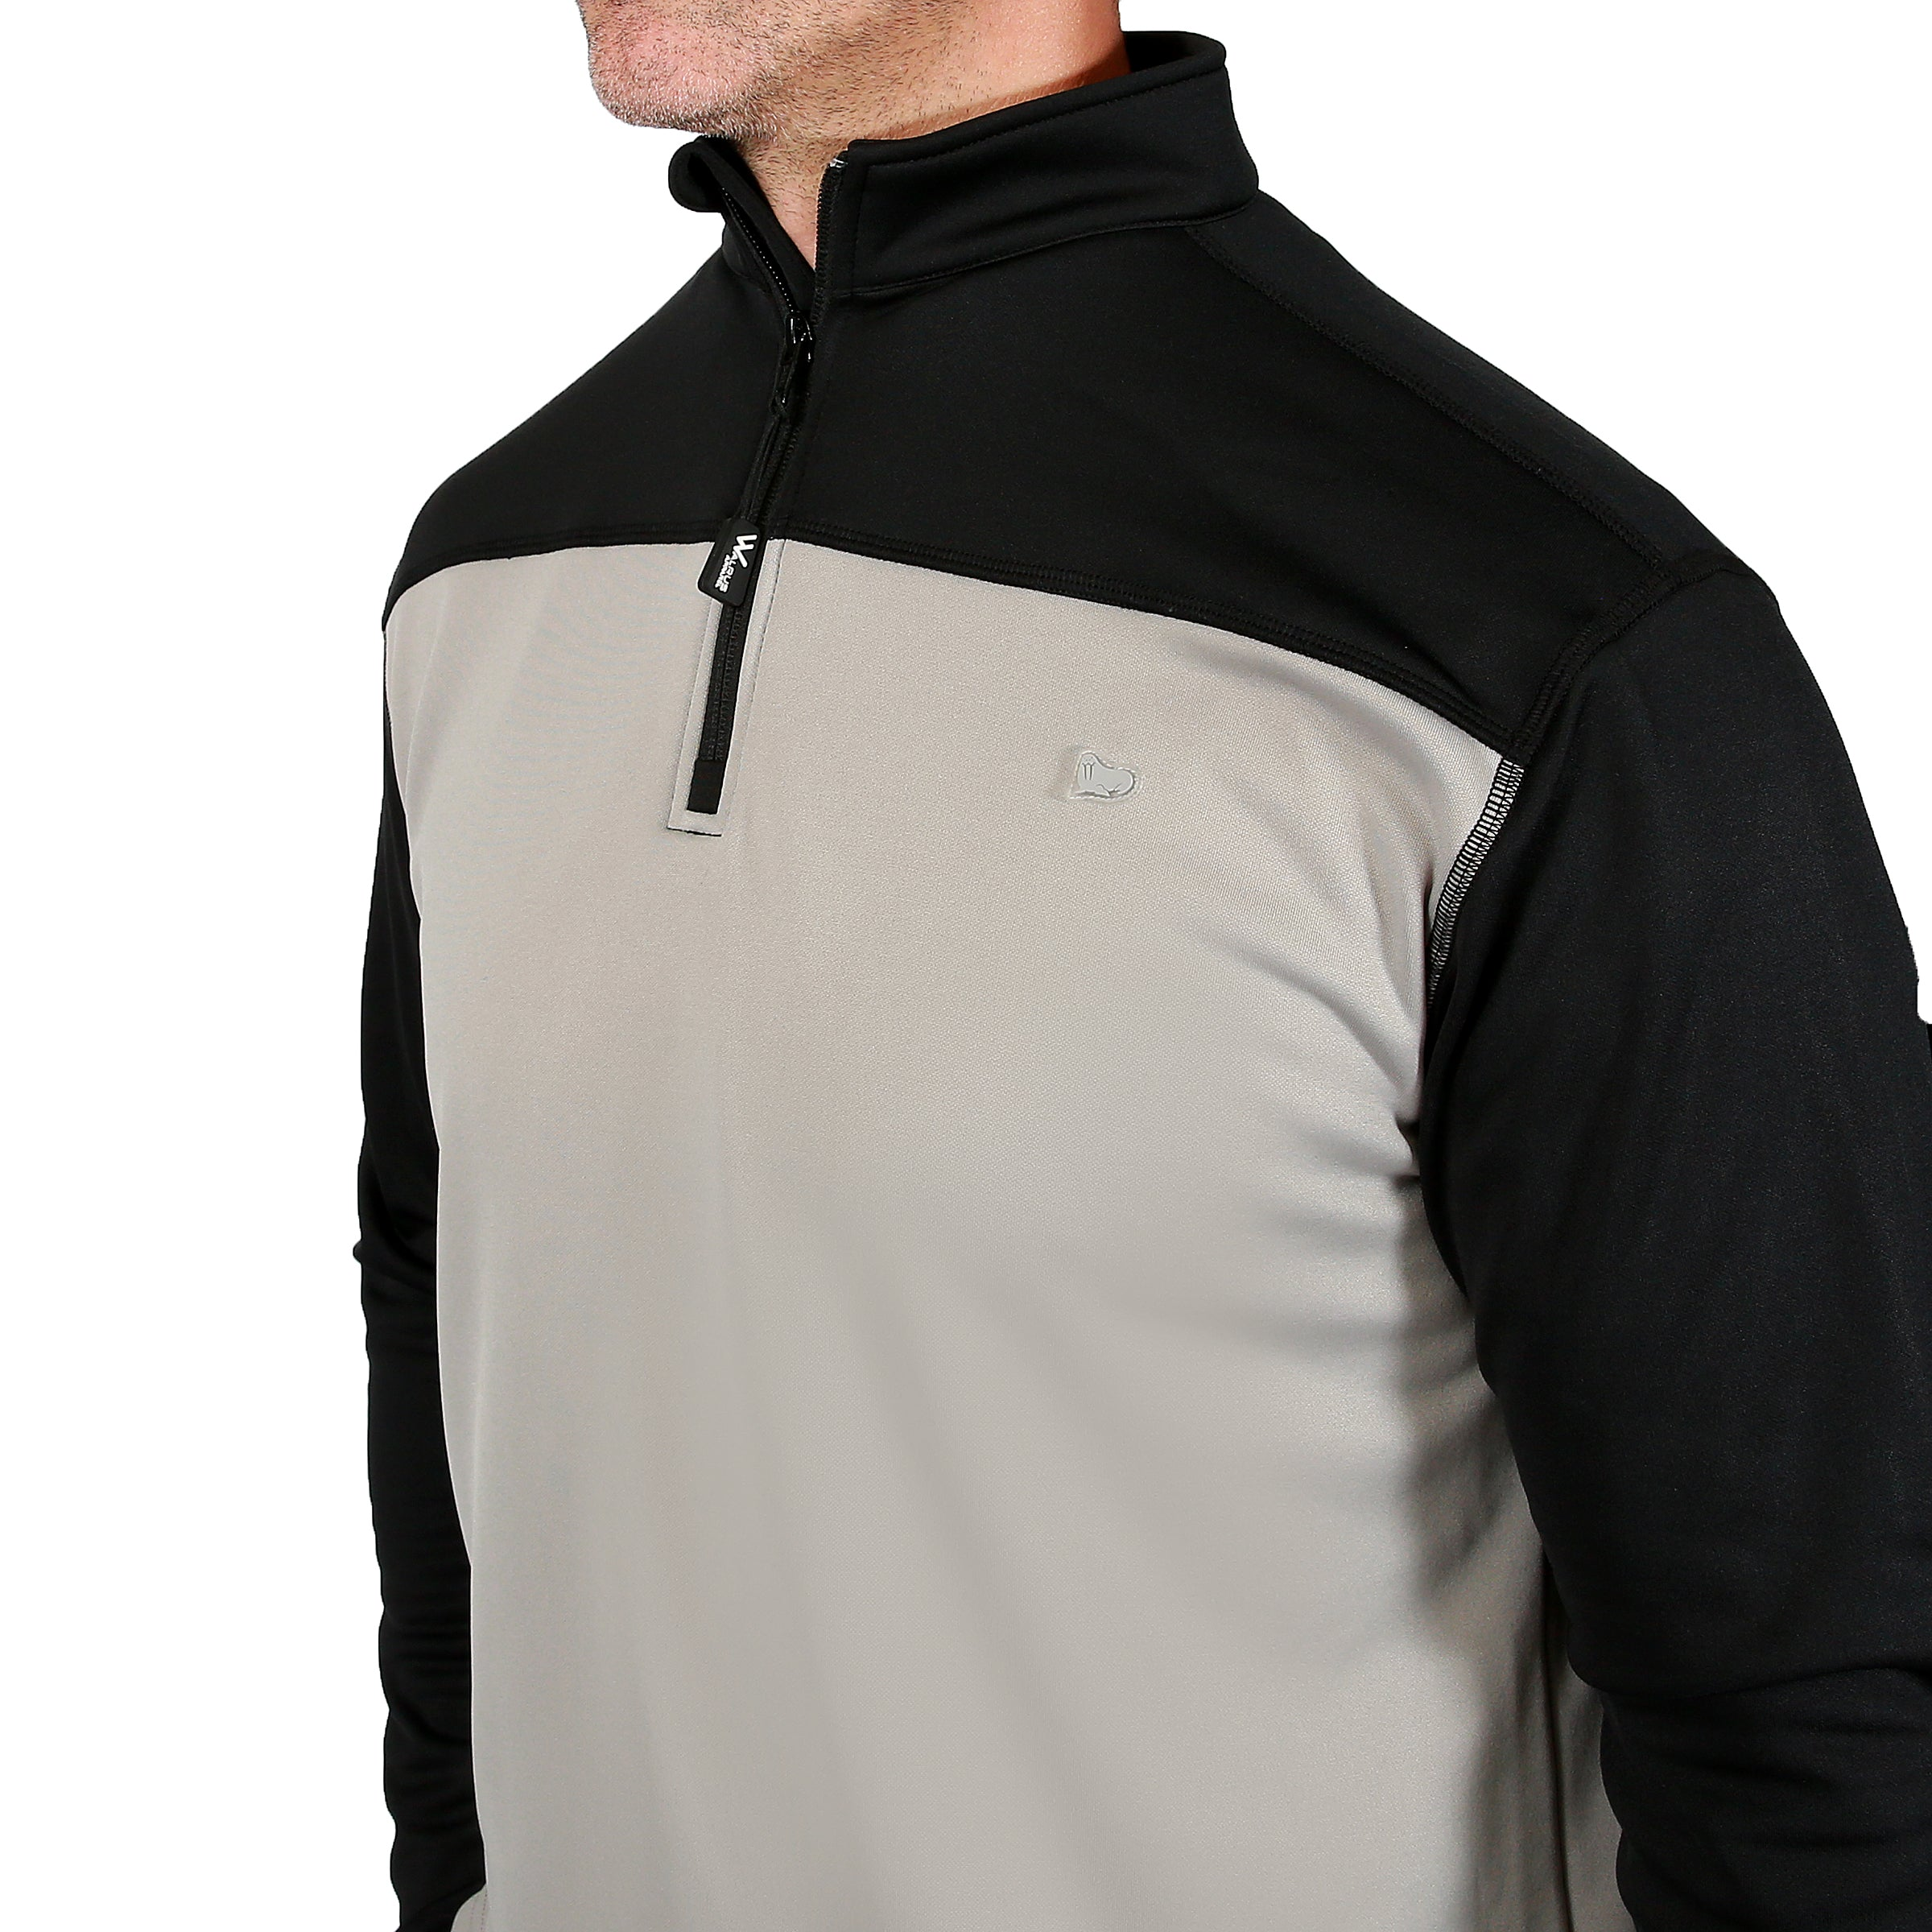 Robert 1/4 Zip Cover Up - Black/Neutral Grey by Walrus Apparel